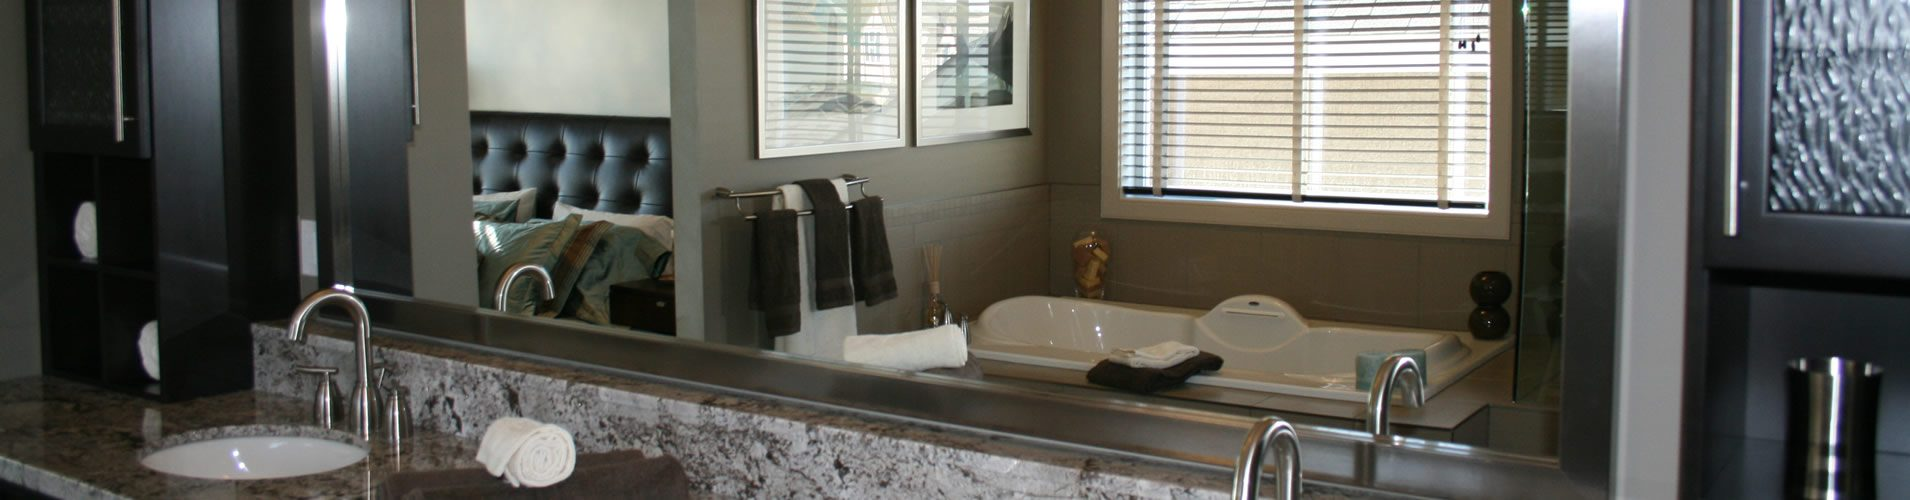 custom bathrom mirror Nashville